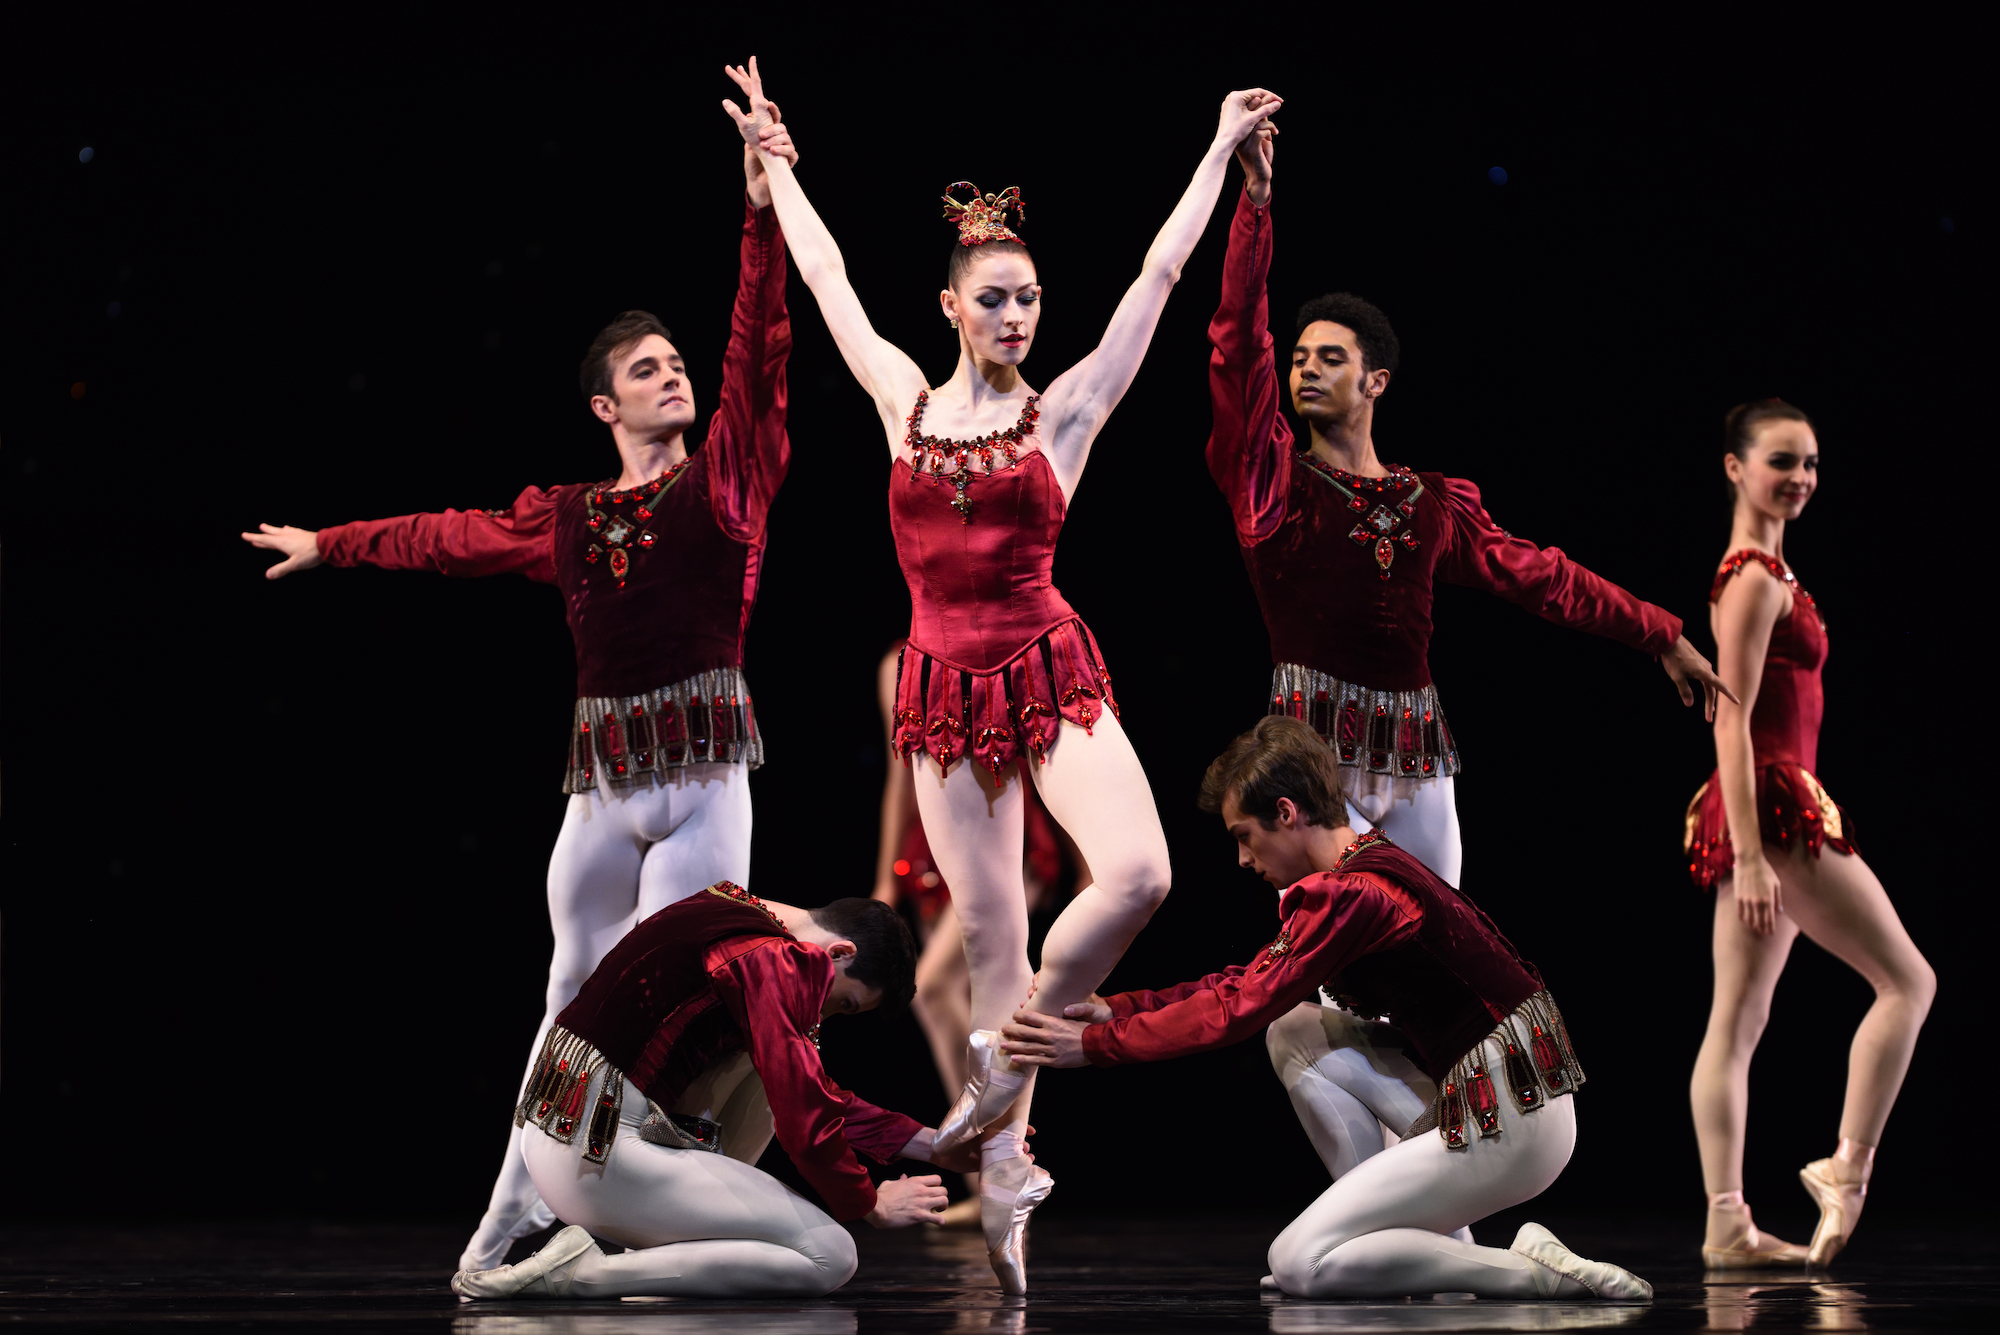 Sofiane Sylve in Balanchine's Rubies. (Choreography by George Balanchine © The Balanchine Trust; Photo © Erik Tomasson)